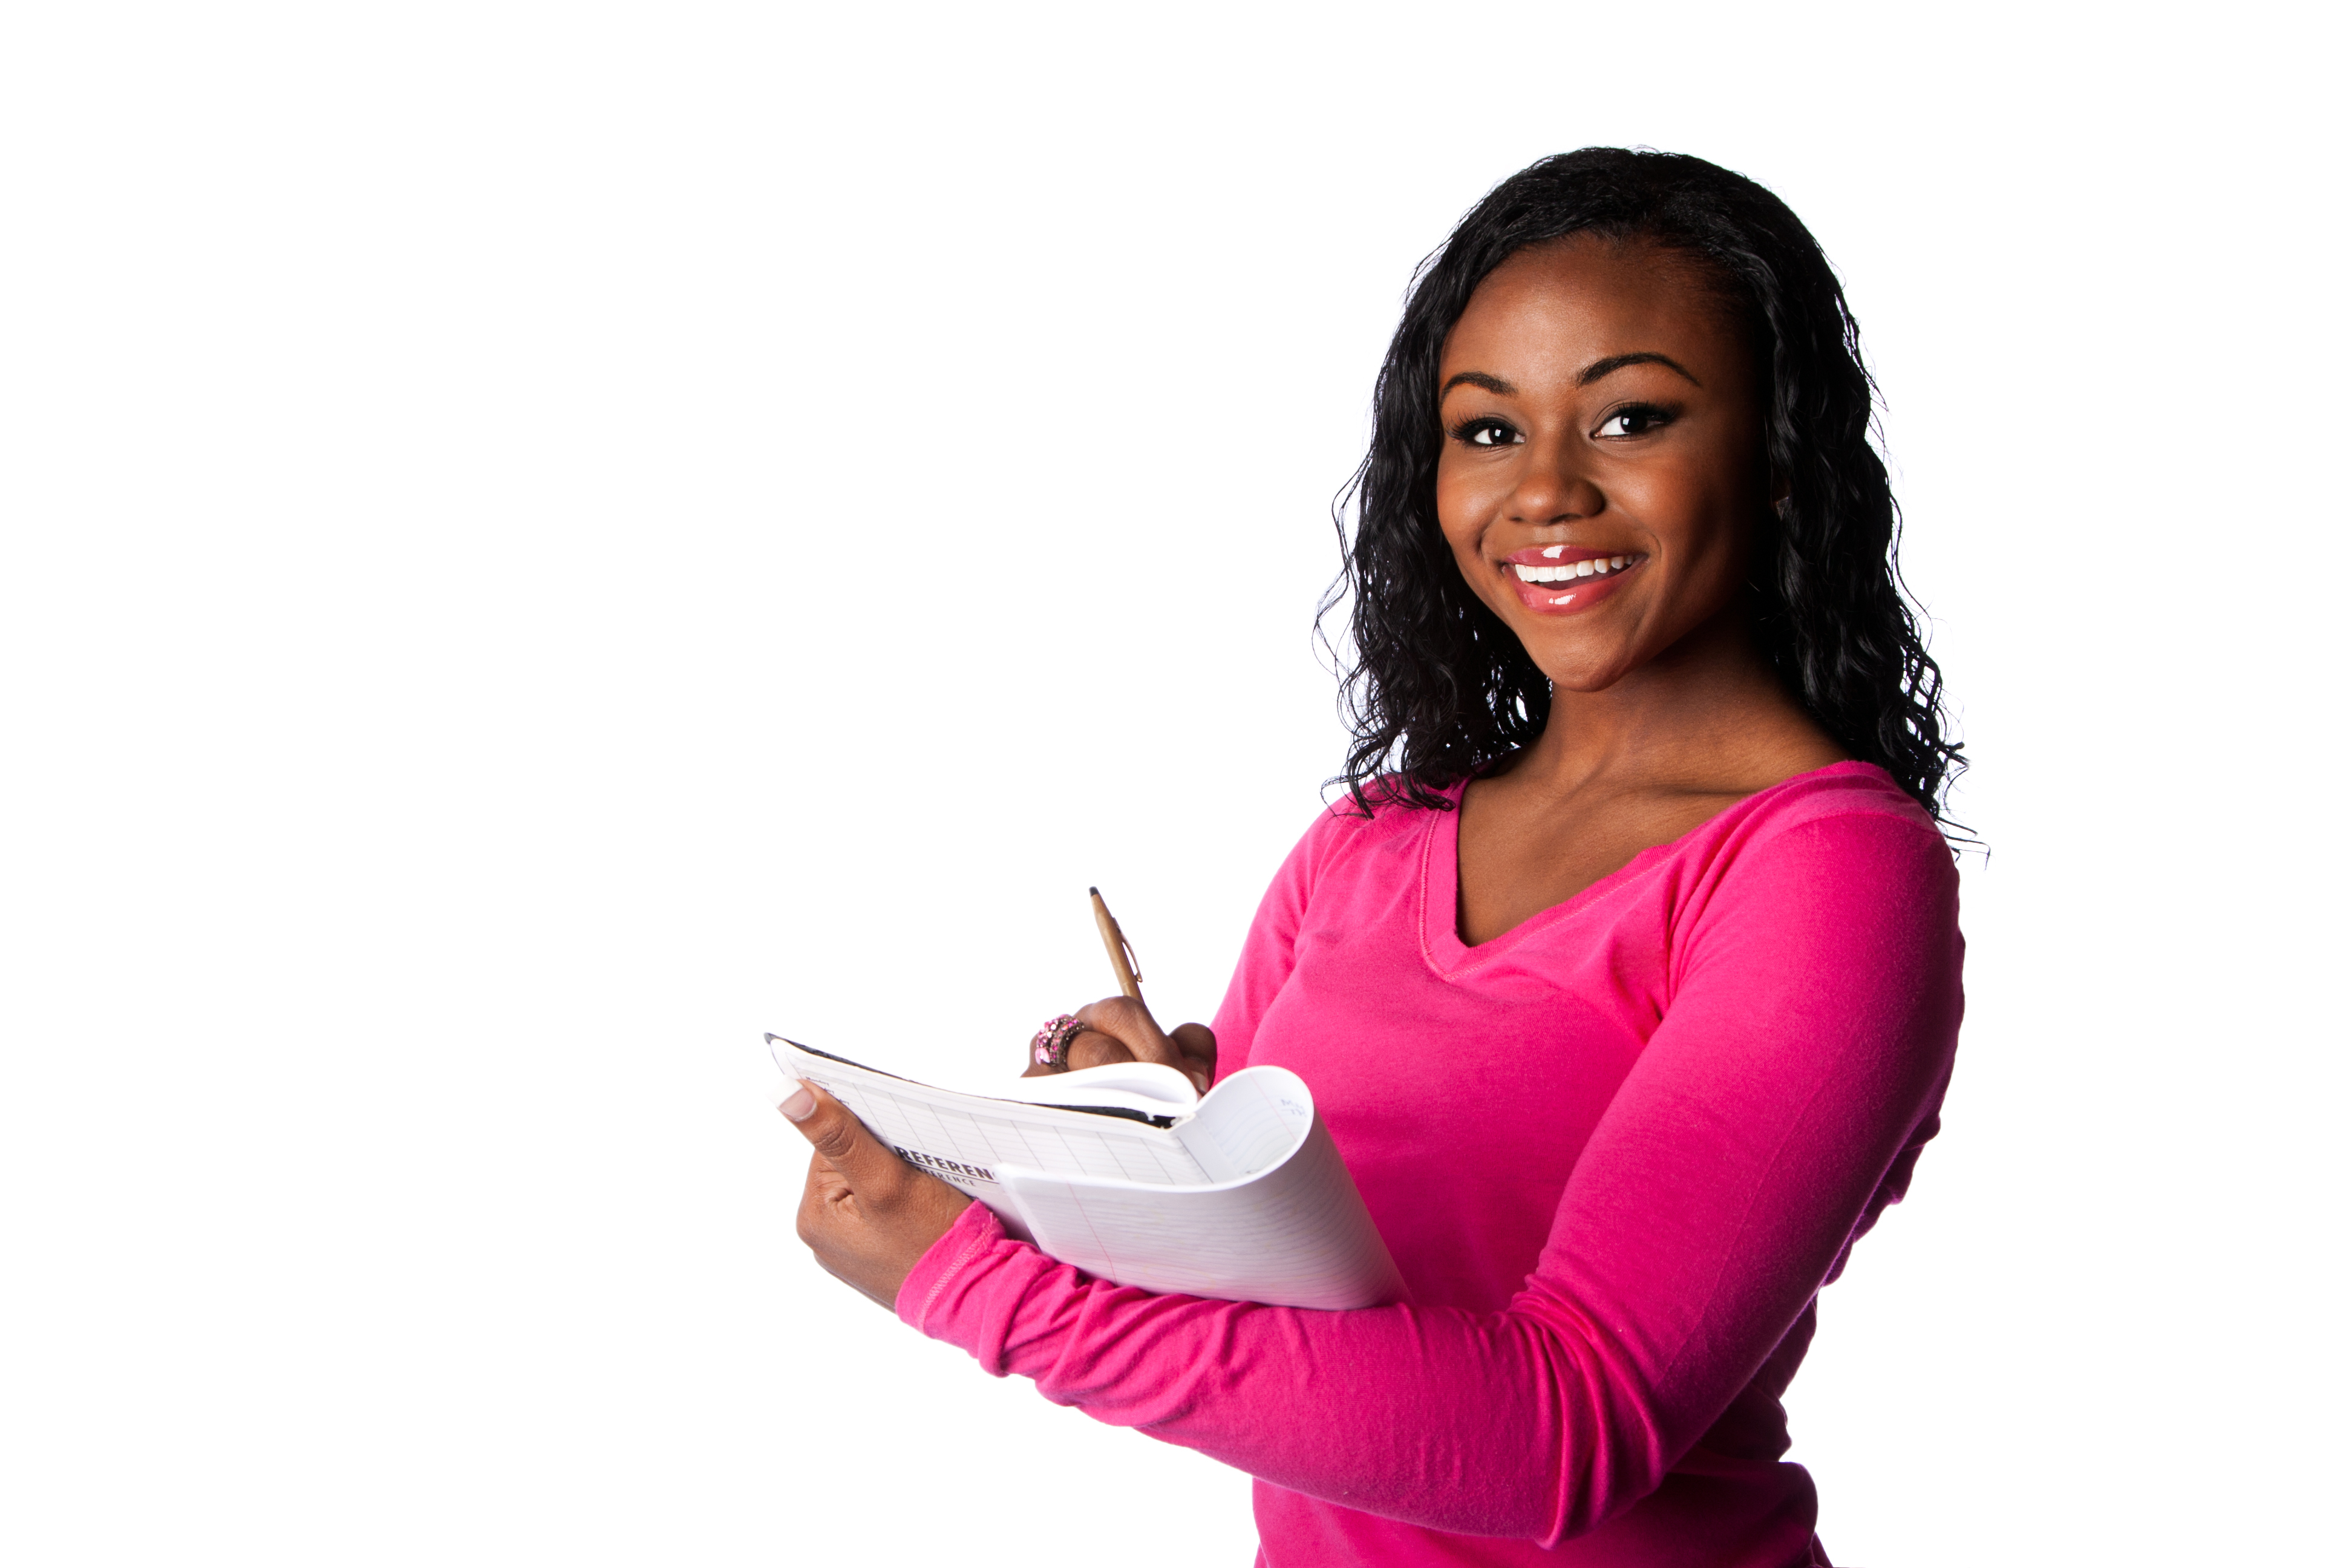 writemypapers org,writemypapers org reviews,writemypapers org review